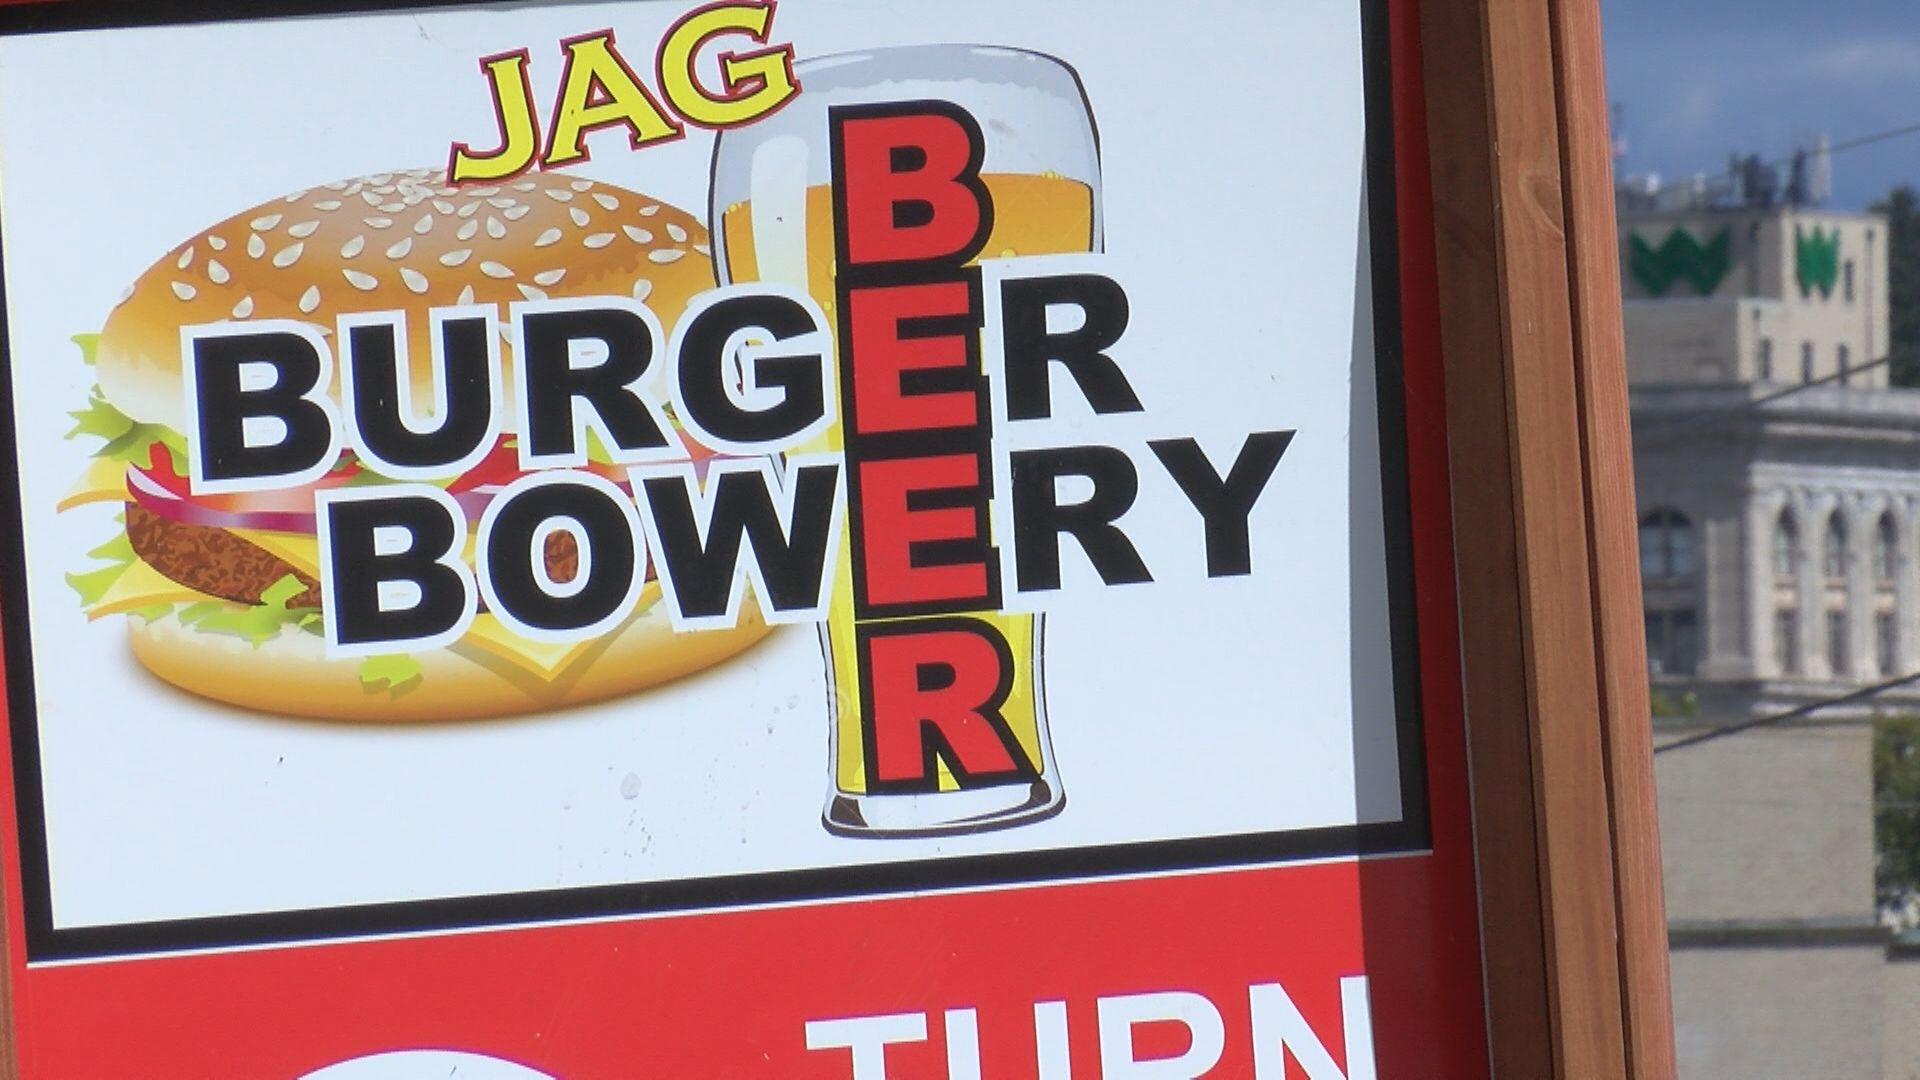 Tasty Tuesday Jag Beer Burger Bowery